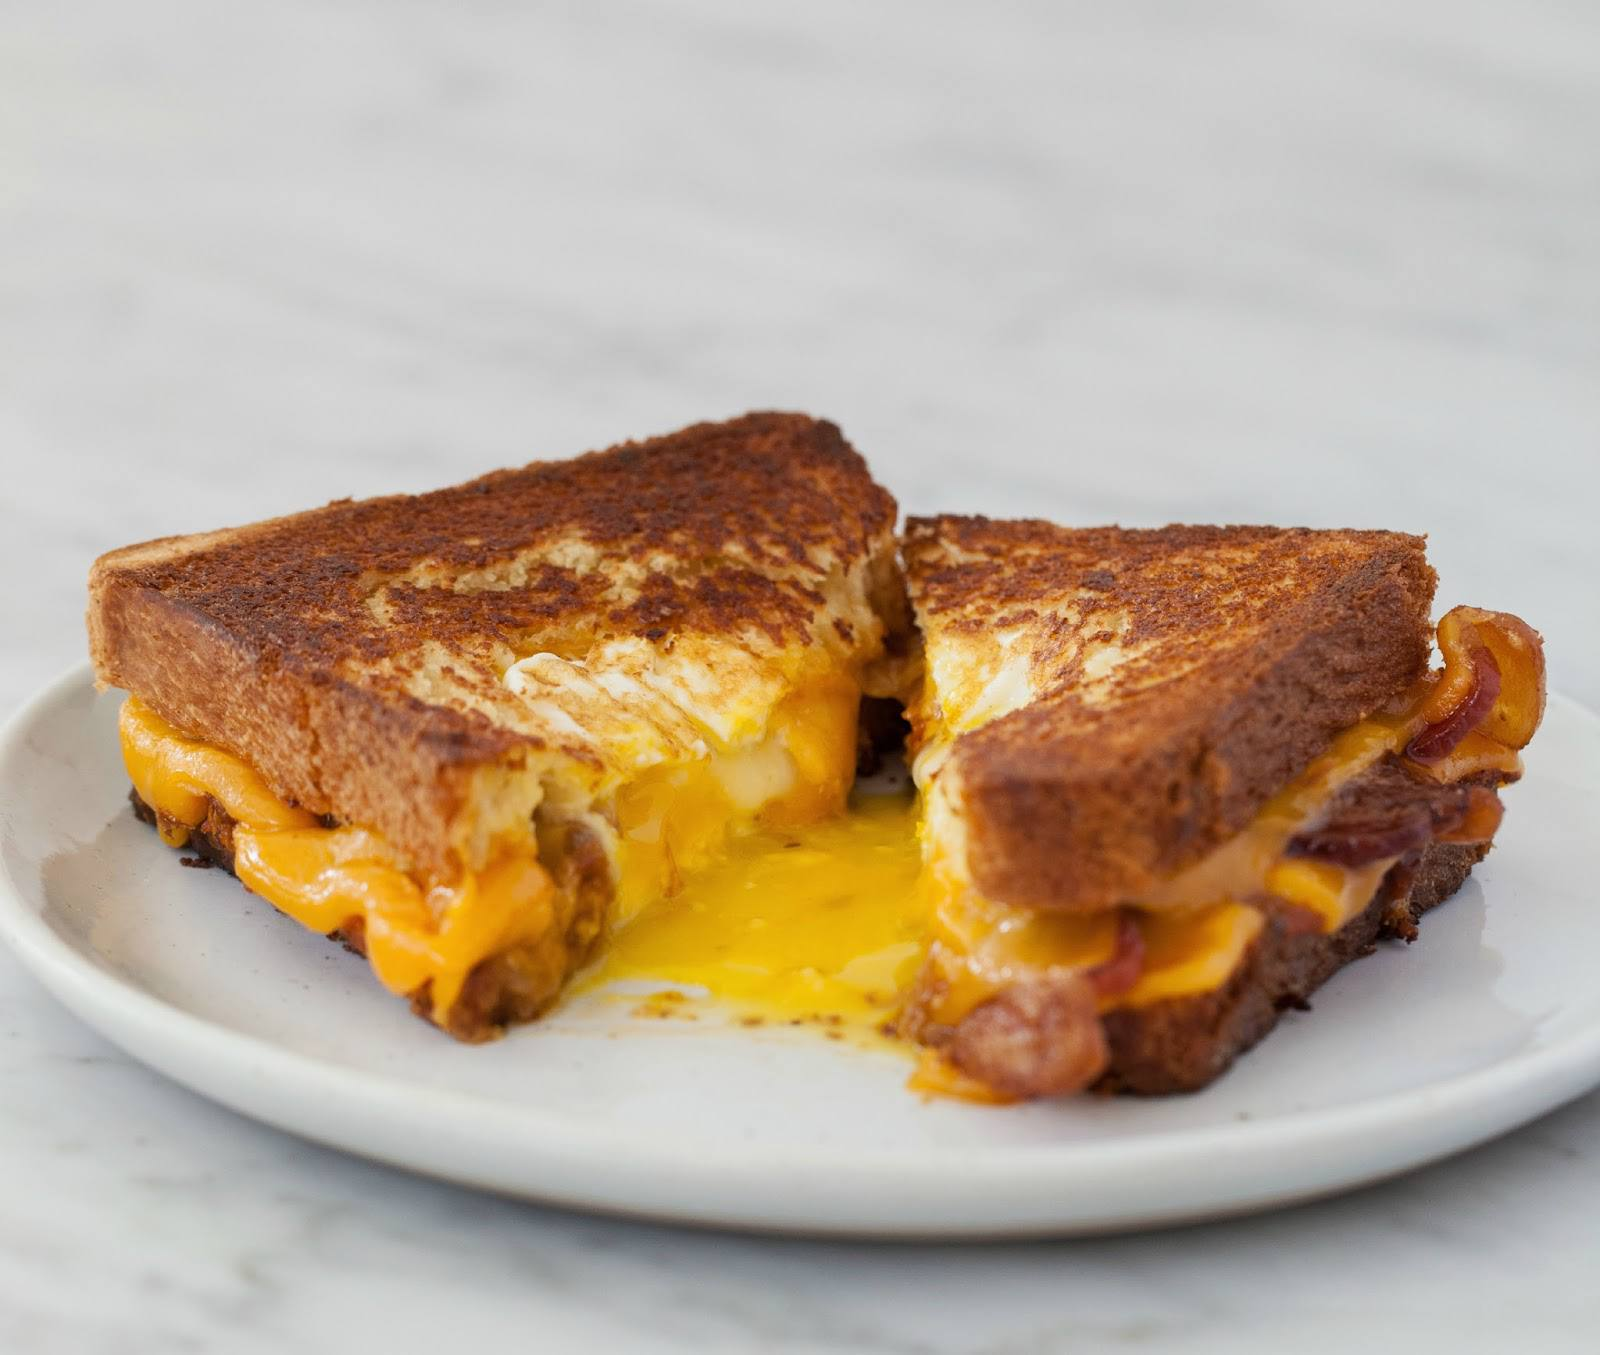 Hole-in-one Grilled Cheese with Tomato Jam and Bacon